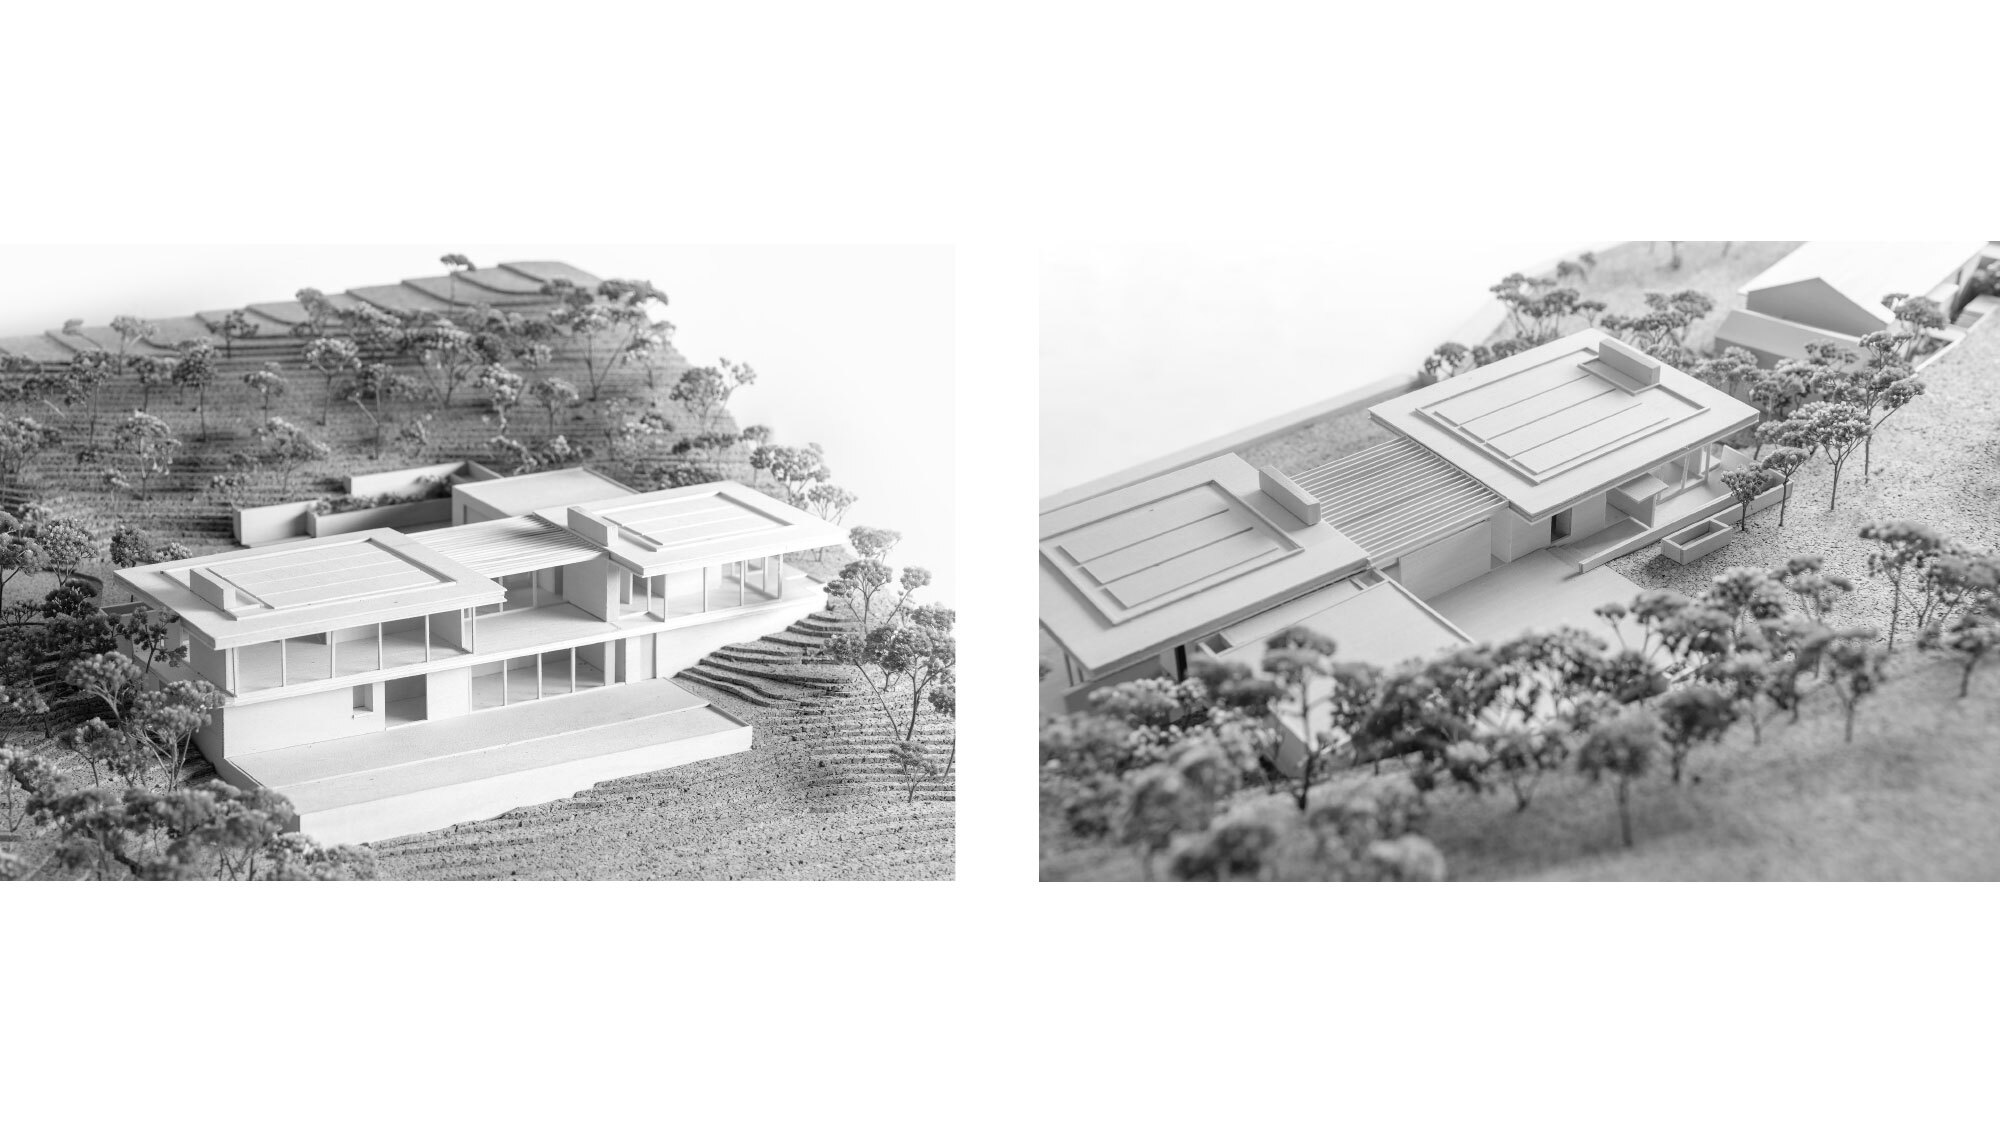 CCY Architects Pavilion model images 2